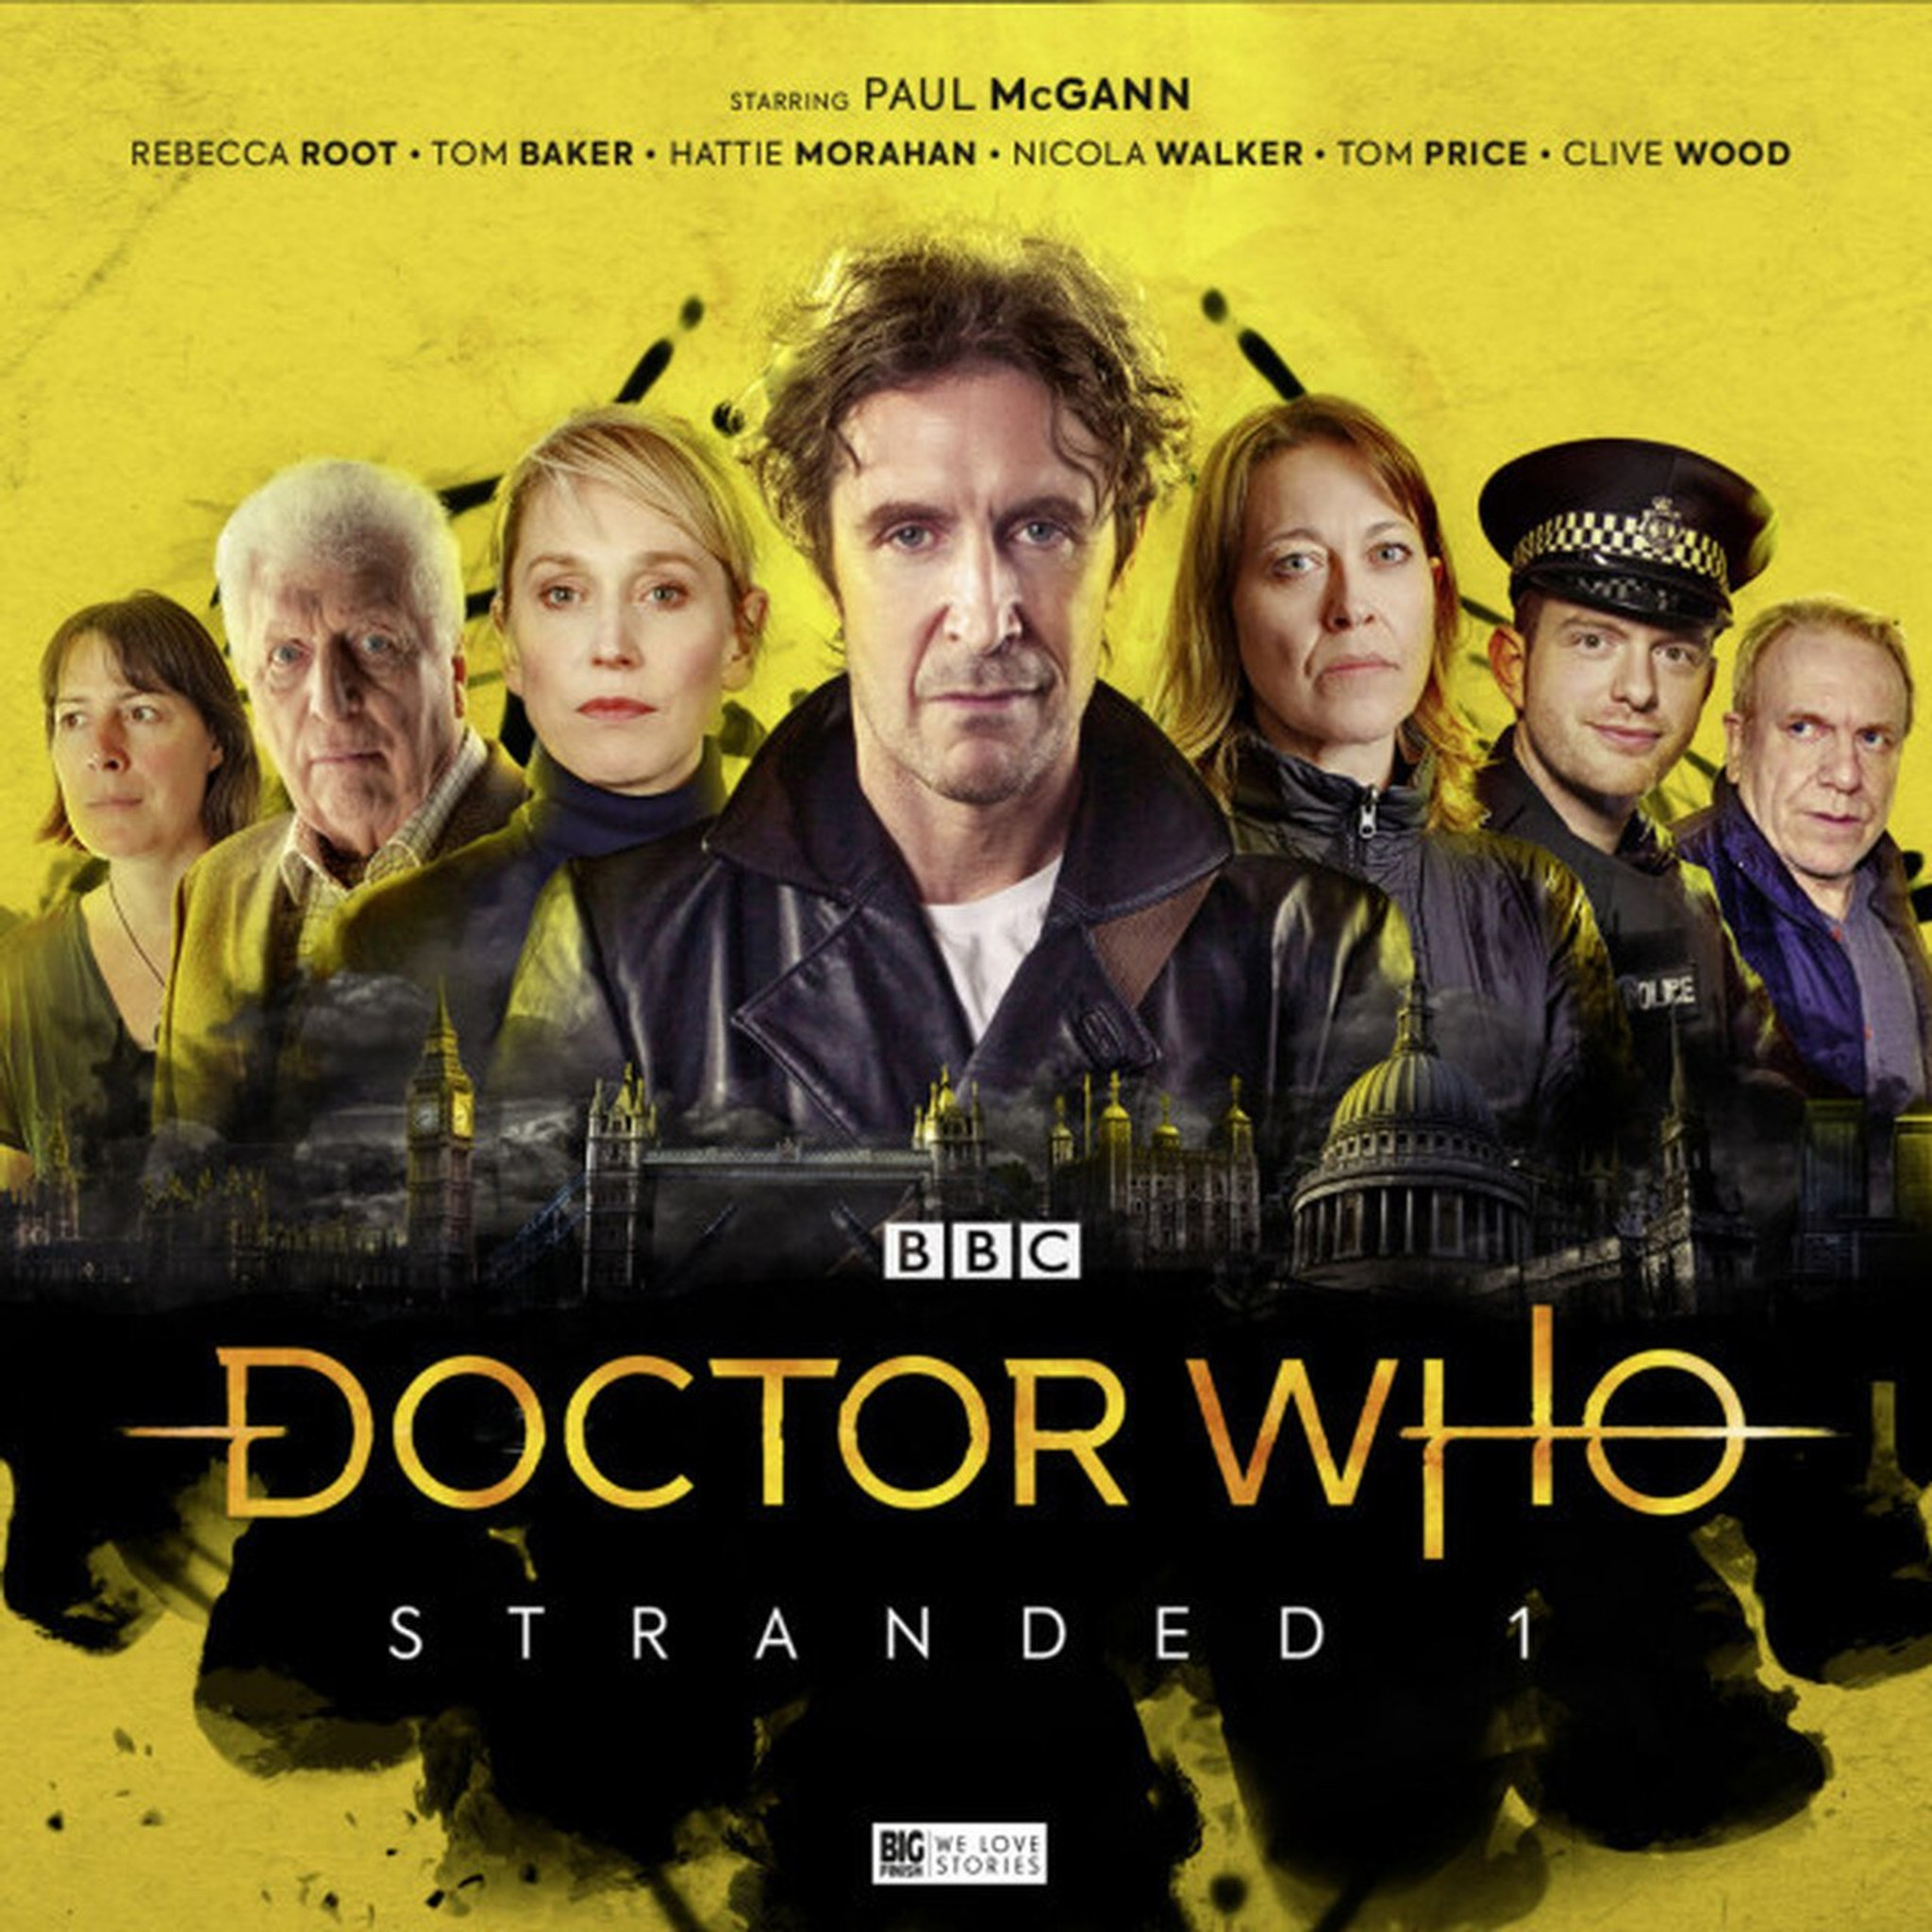 The 8th Doctor is 'Stranded' and so much more in the latest Big Finish releases!